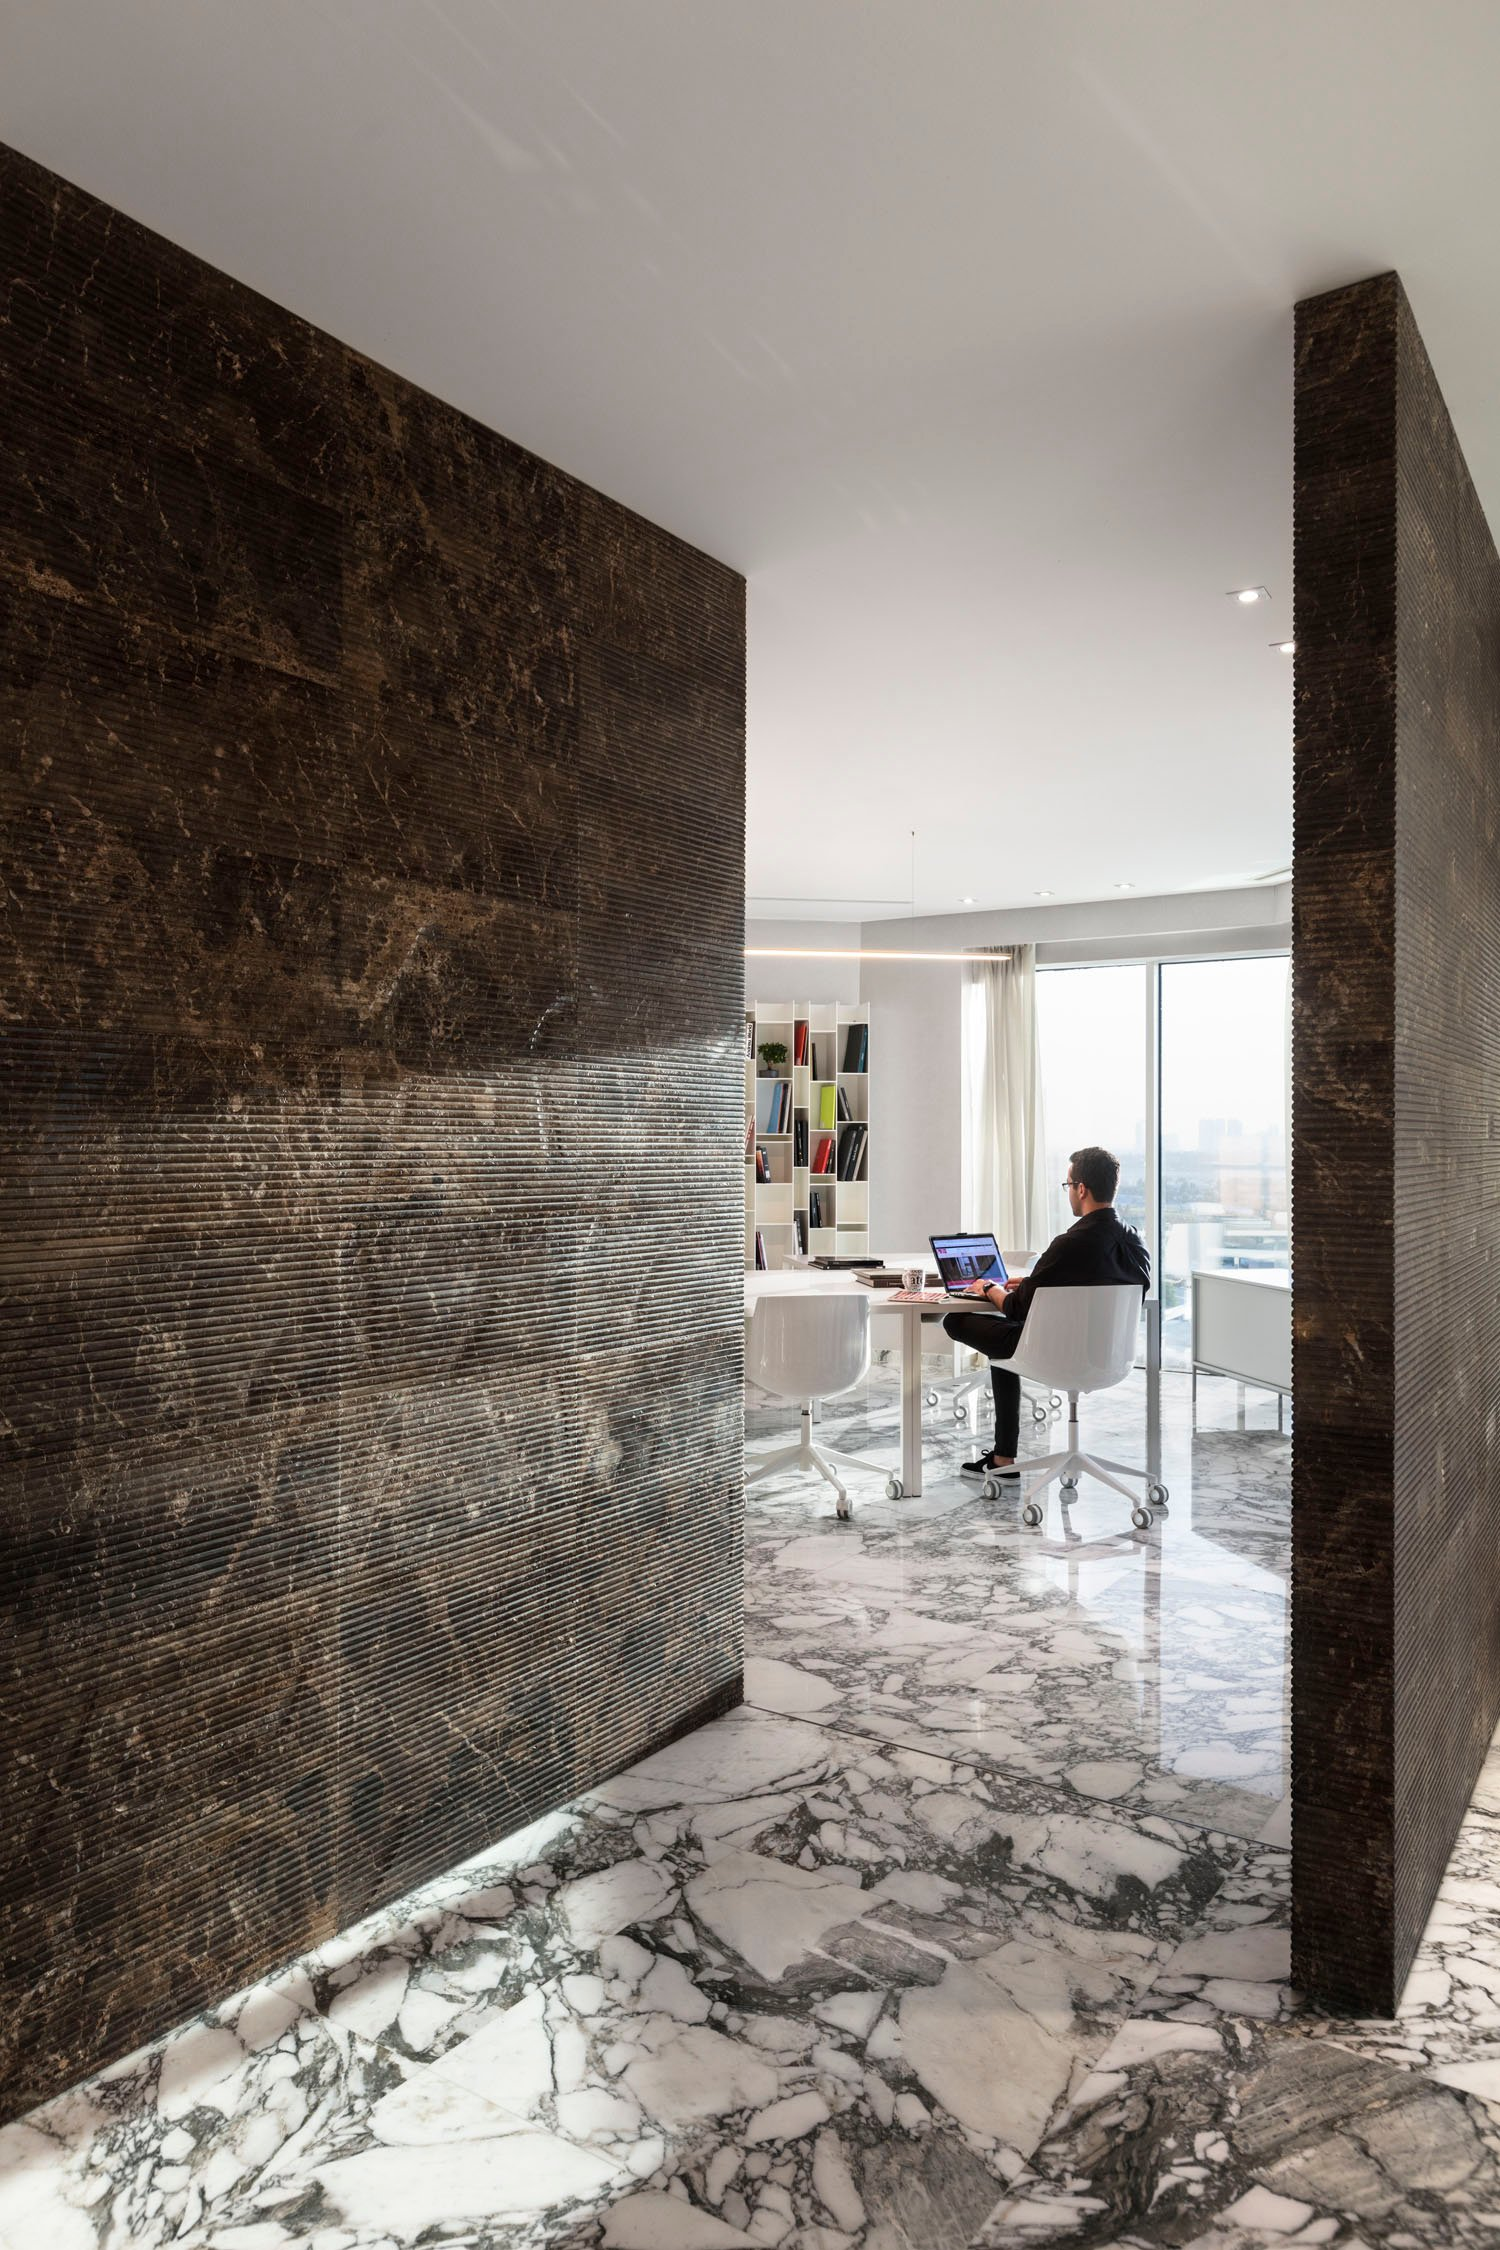 Inside the penthouse the plan remains open: there are no enclosed spaces, but the definition of the spaces manifests itself in a sculptural way through material walls. Mohamed Somji